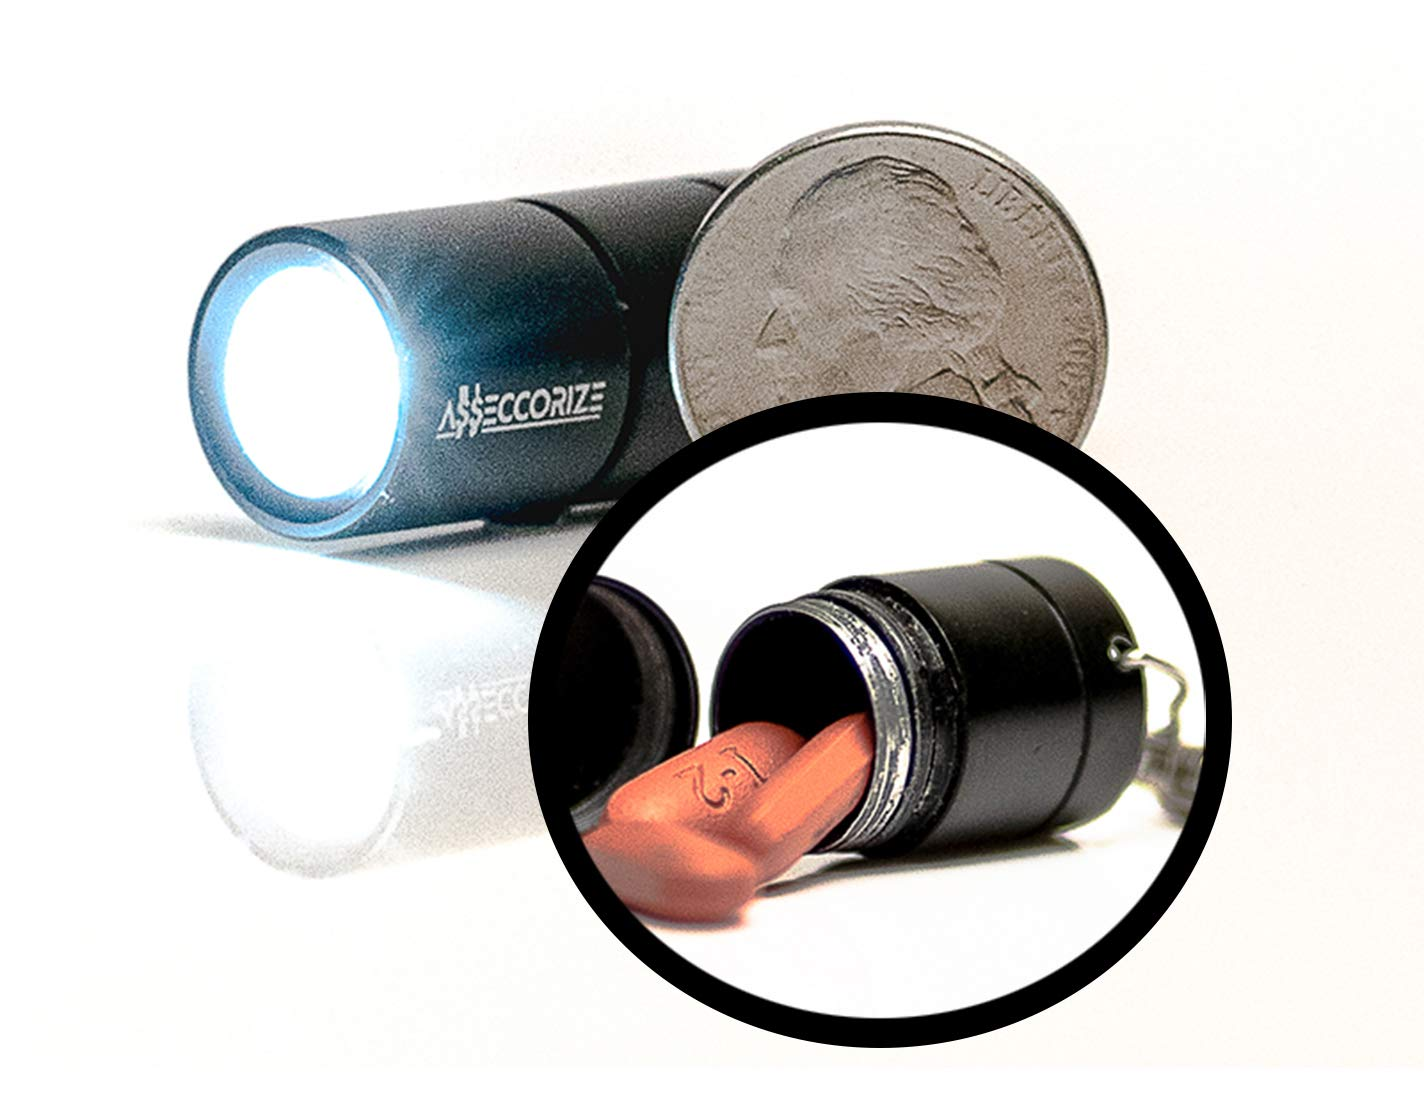 Premium Pill Holder Keychain Stash Box Disguised as Fully Functional Mini LED Flashlight with Secret Compartment